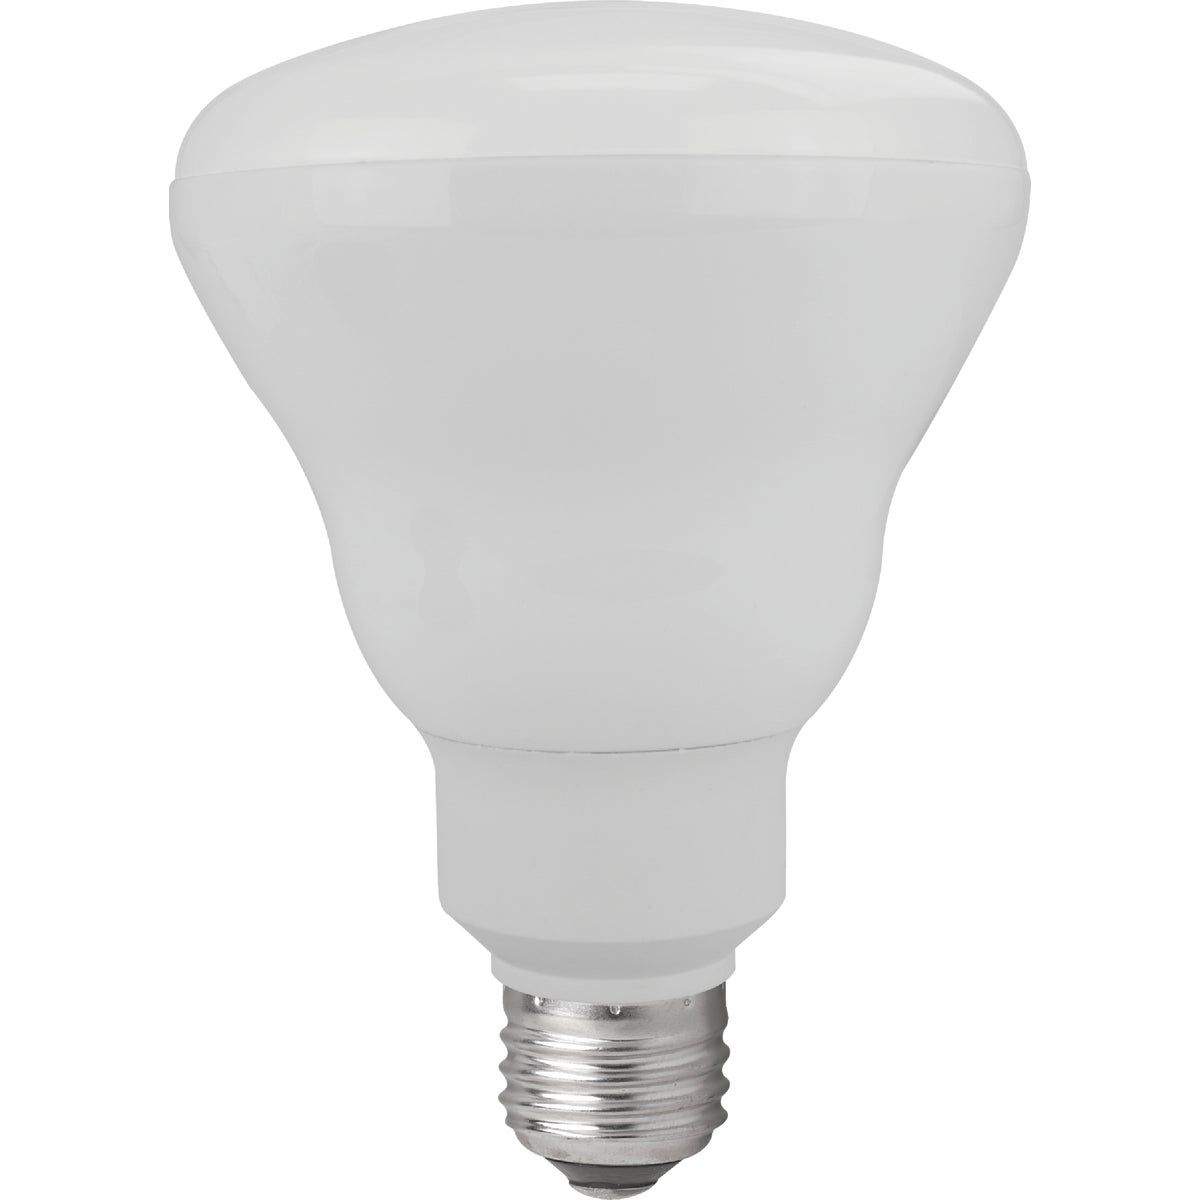 12W BR30 LED 27K BULB - RLBR3012W27KD by TCP